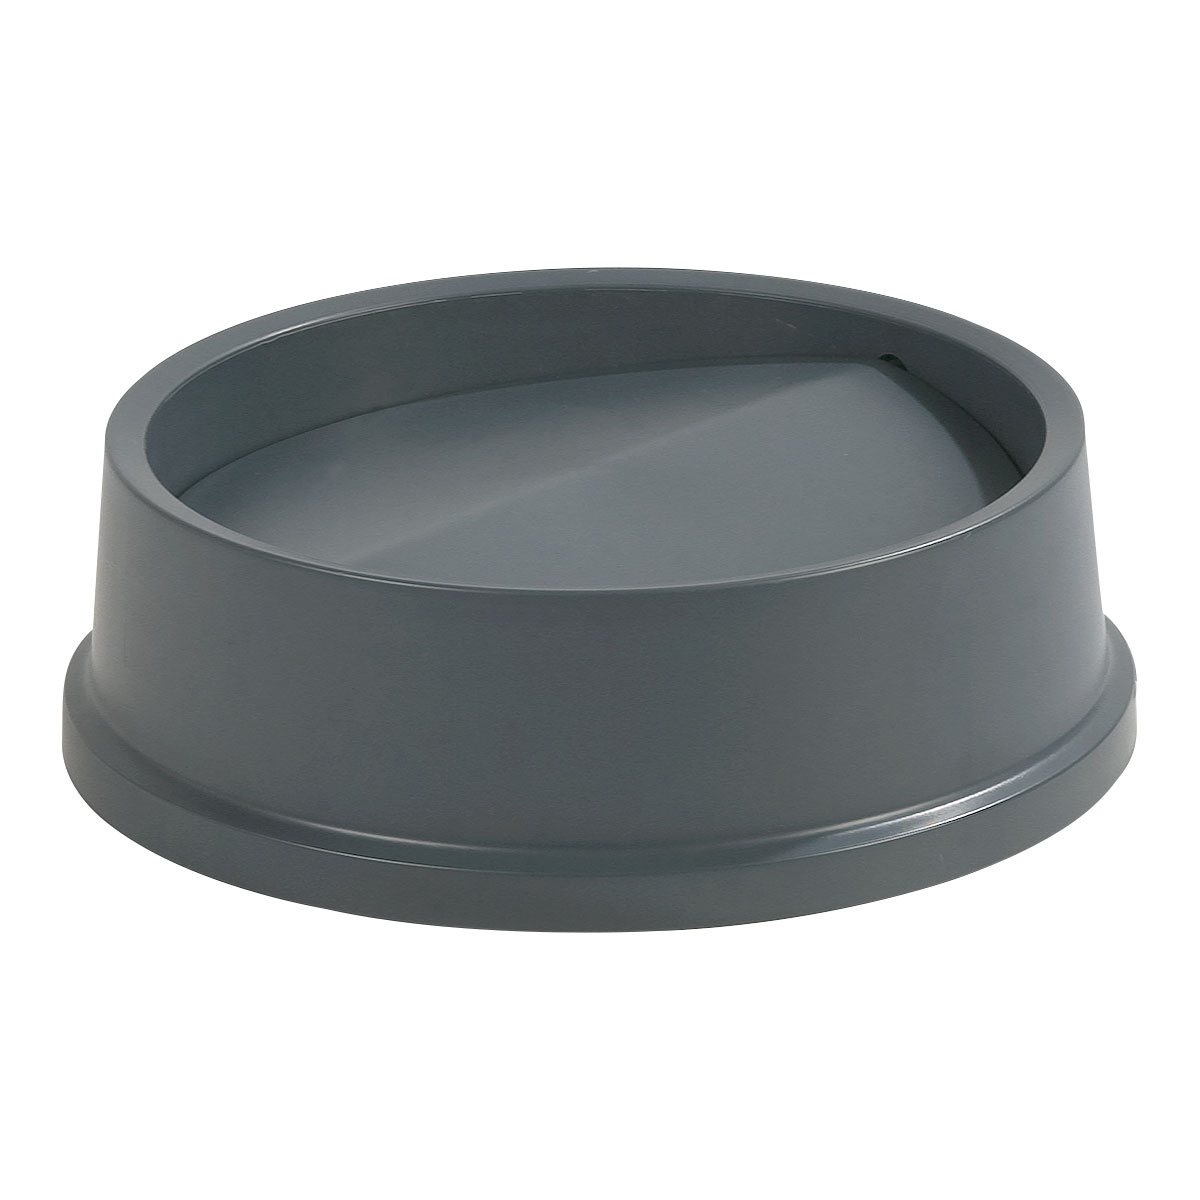 Carlisle 343123-23 Round Swing Top Trash Can Lid - Plastic, Gray